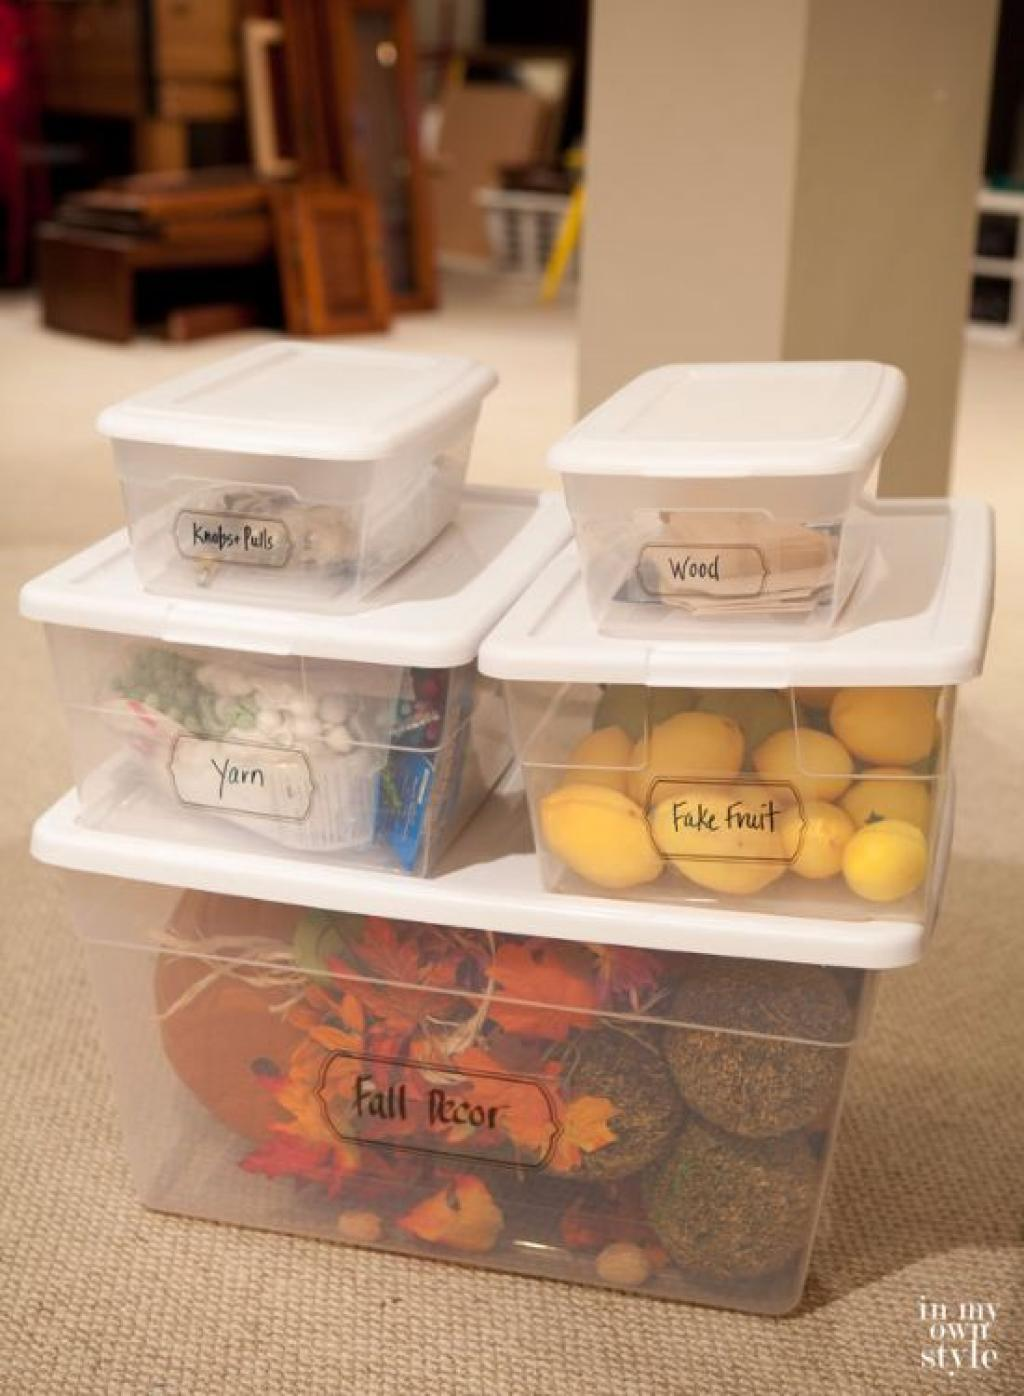 Get Yourself Some Cheap Plastic Boxes And Copy These Clever Storage Ideas To Organize The House